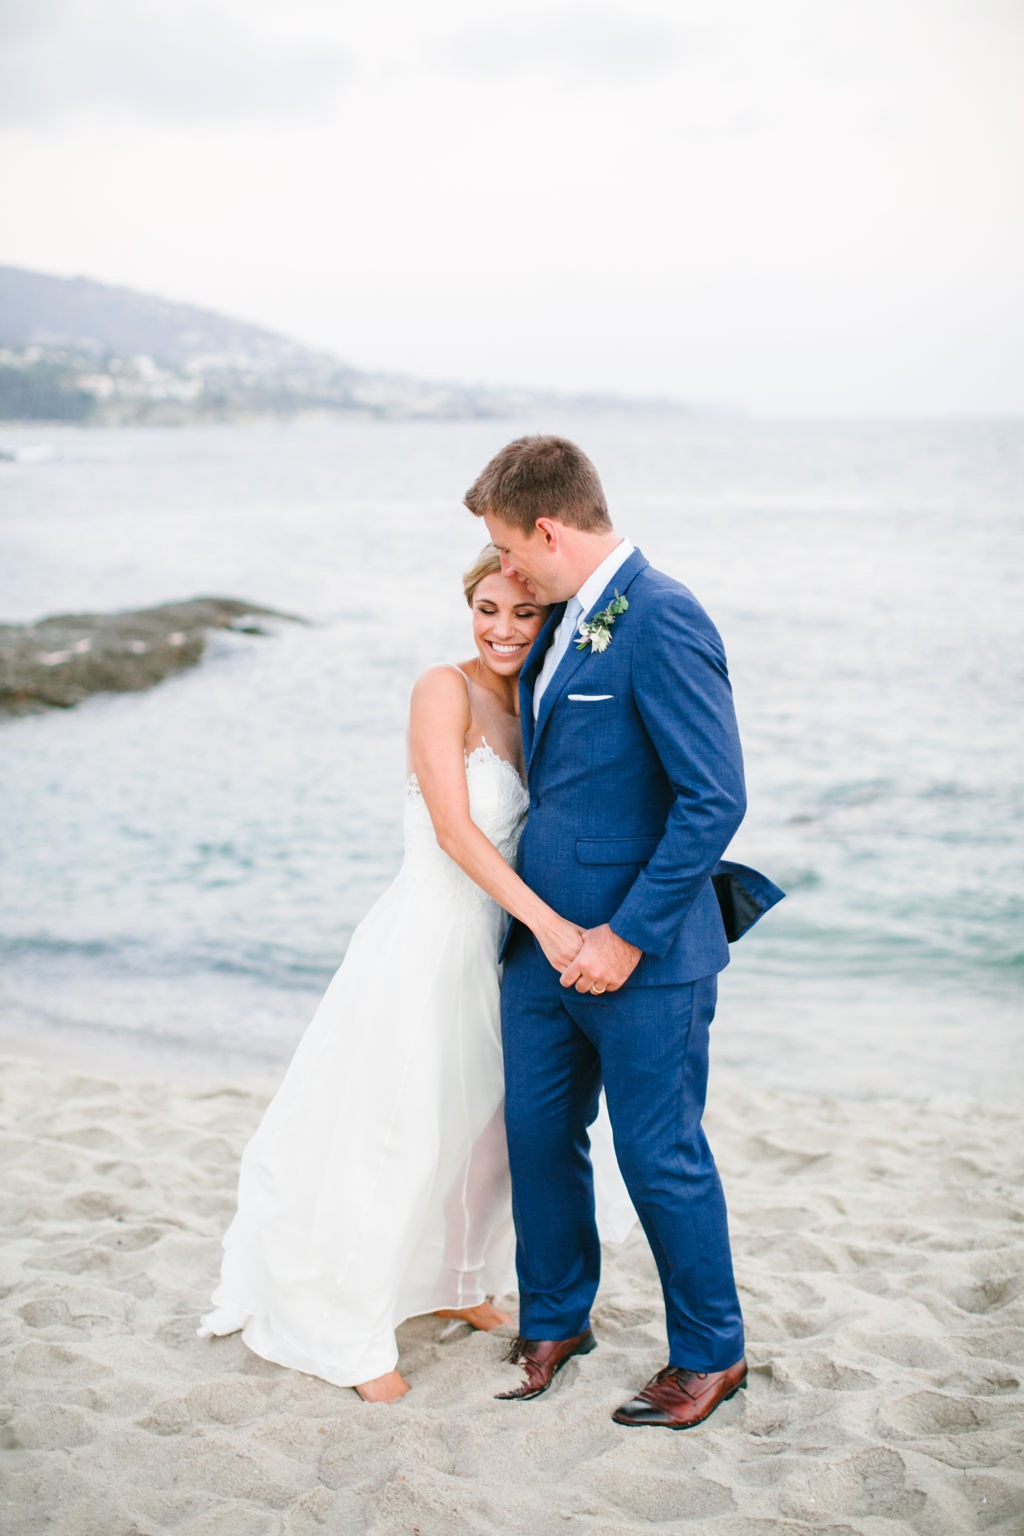 Lea-Ann Belter Real Bride Katie + Matt's Coastal Wedding at Montage Laguna Beach | gown: customized Lea-Ann Belter Ophelia gown and